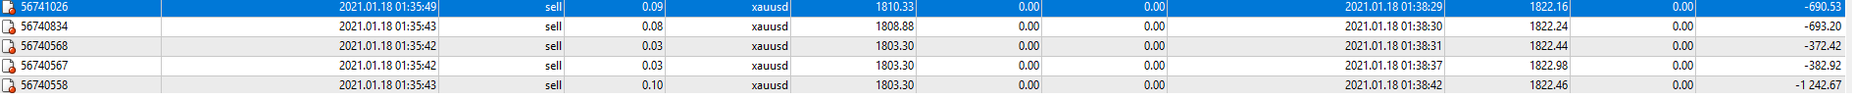 GOLD OPEN PRICE.png